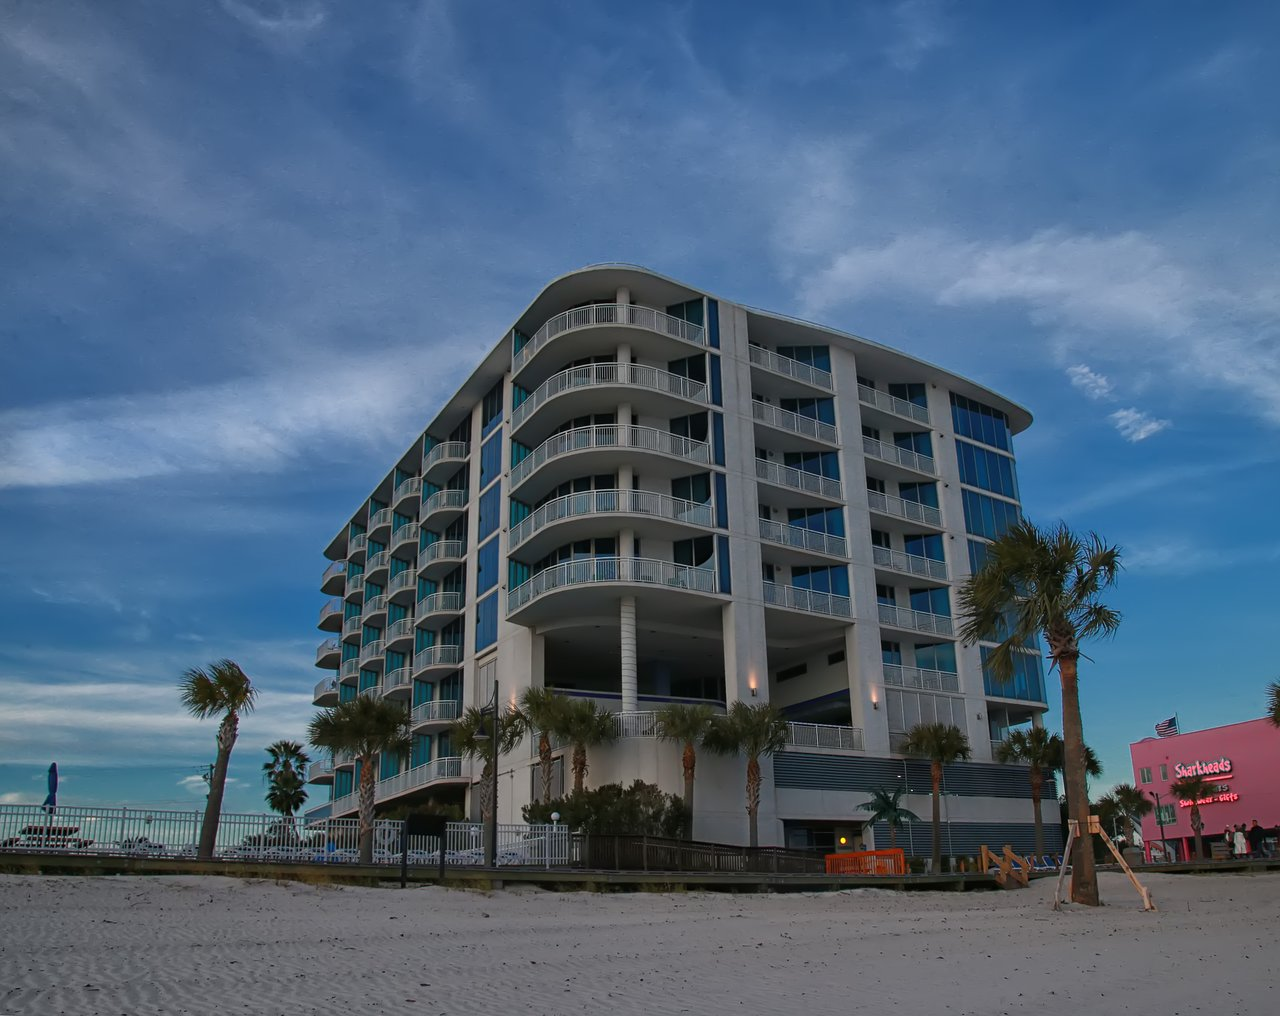 South Beach Biloxi Hotel Suites 137 2 7 Updated 2019 Prices Reviews Ms Tripadvisor